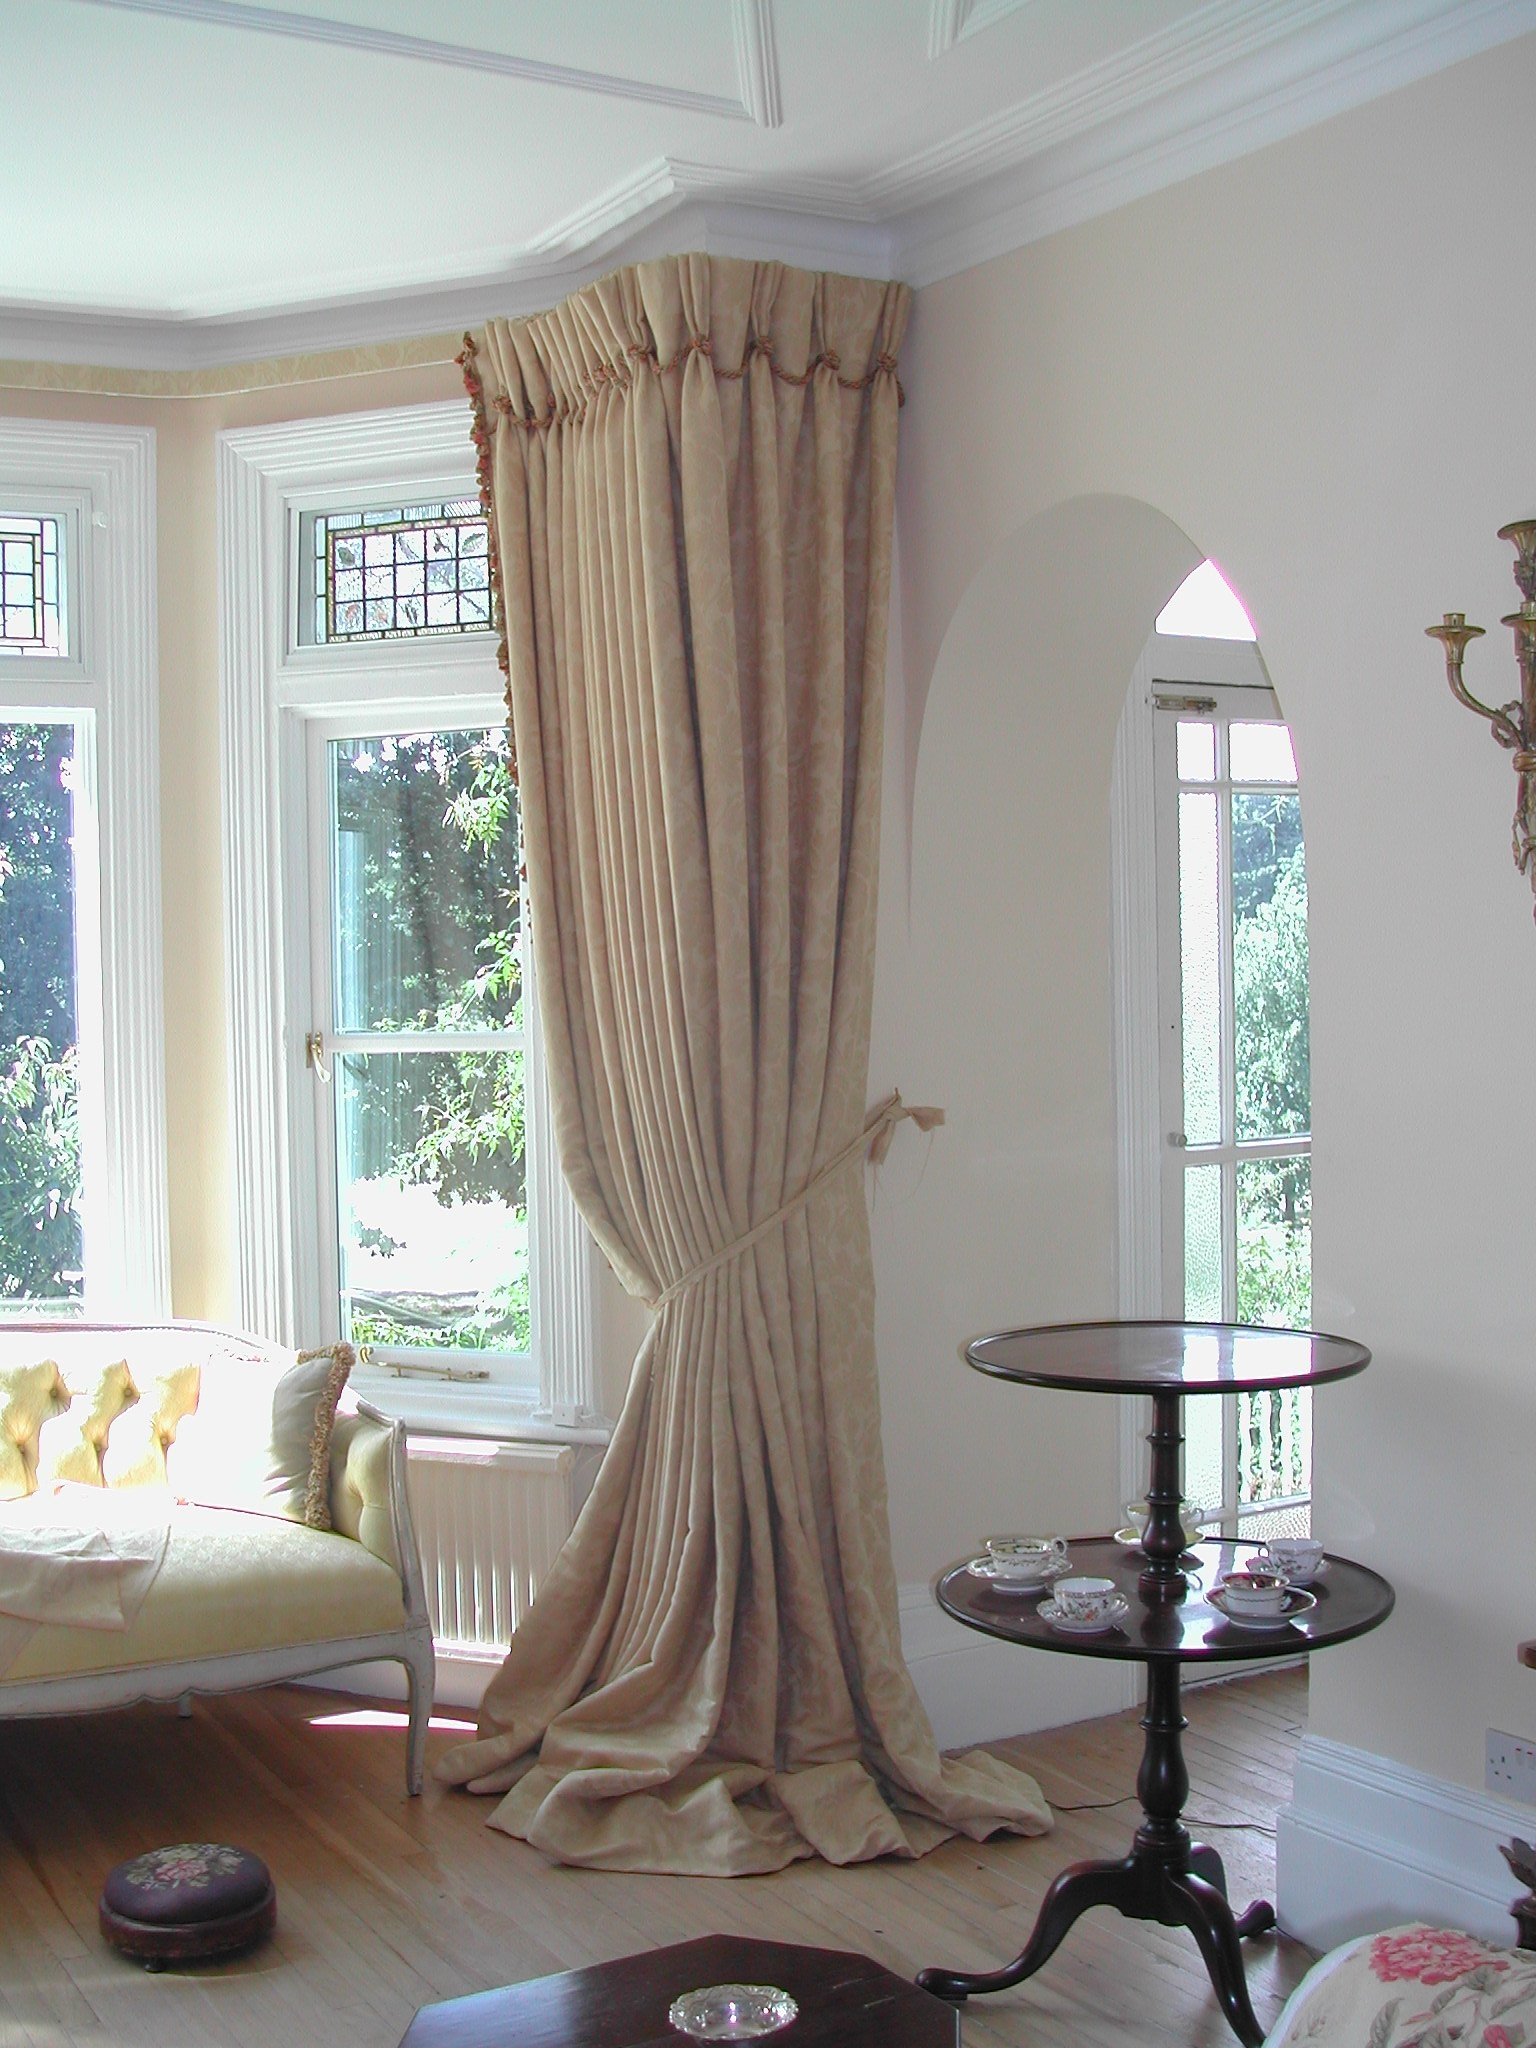 Adorable Interior Decorating With Bay Windows Kitchen Window Throughout Curtains For Round Bay Windows (Image 1 of 15)